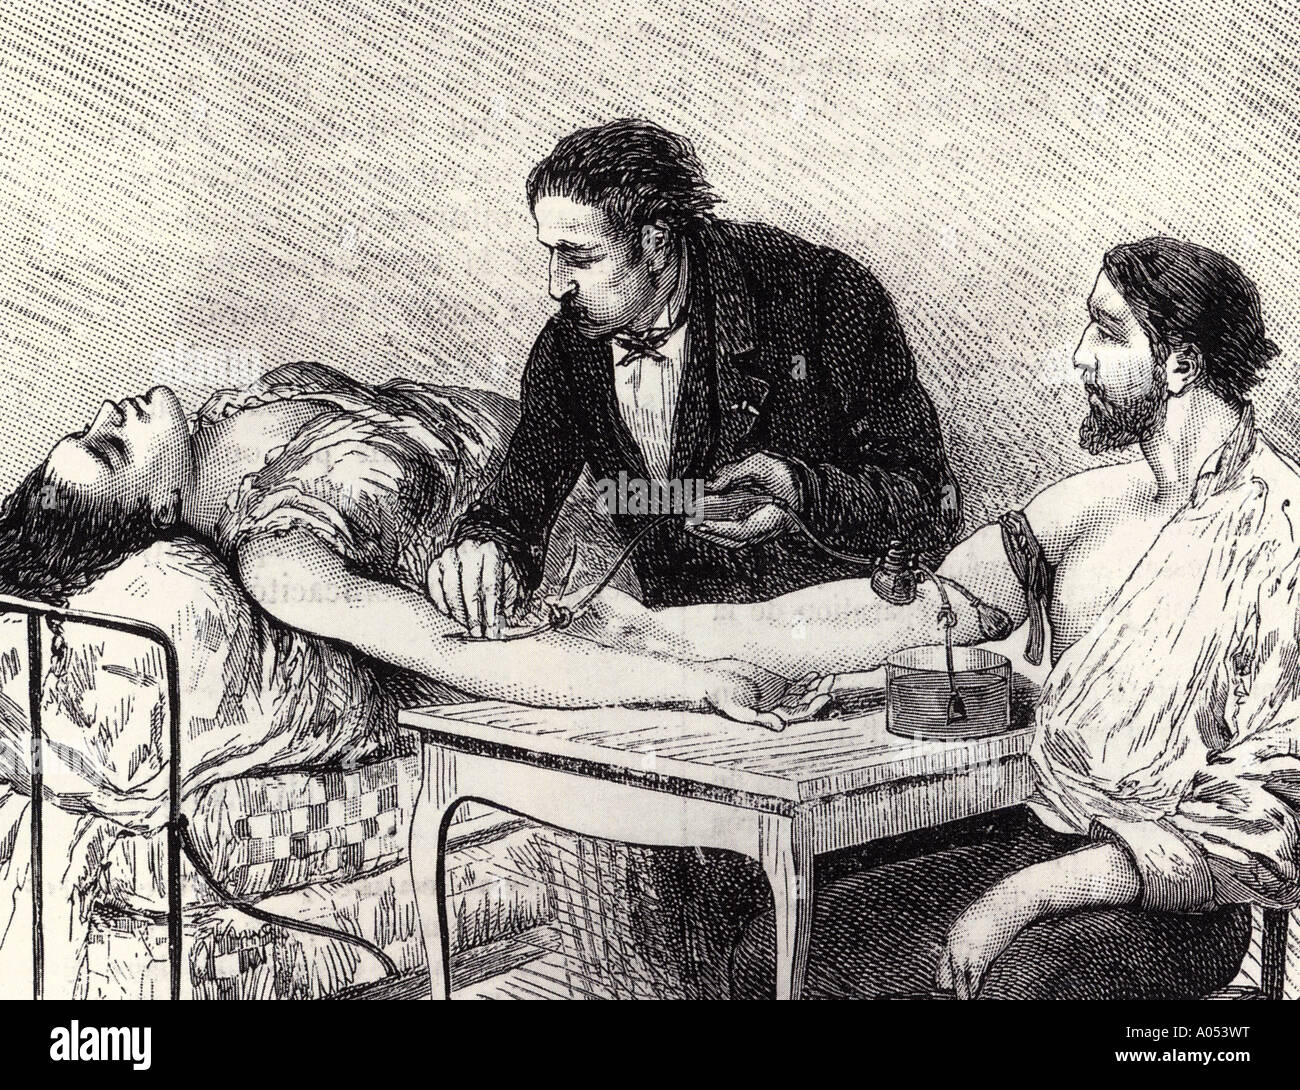 BLOOD TRANSFUSION engraving of a direct, peron to person transfusion in 1882 - see Description below - Stock Image